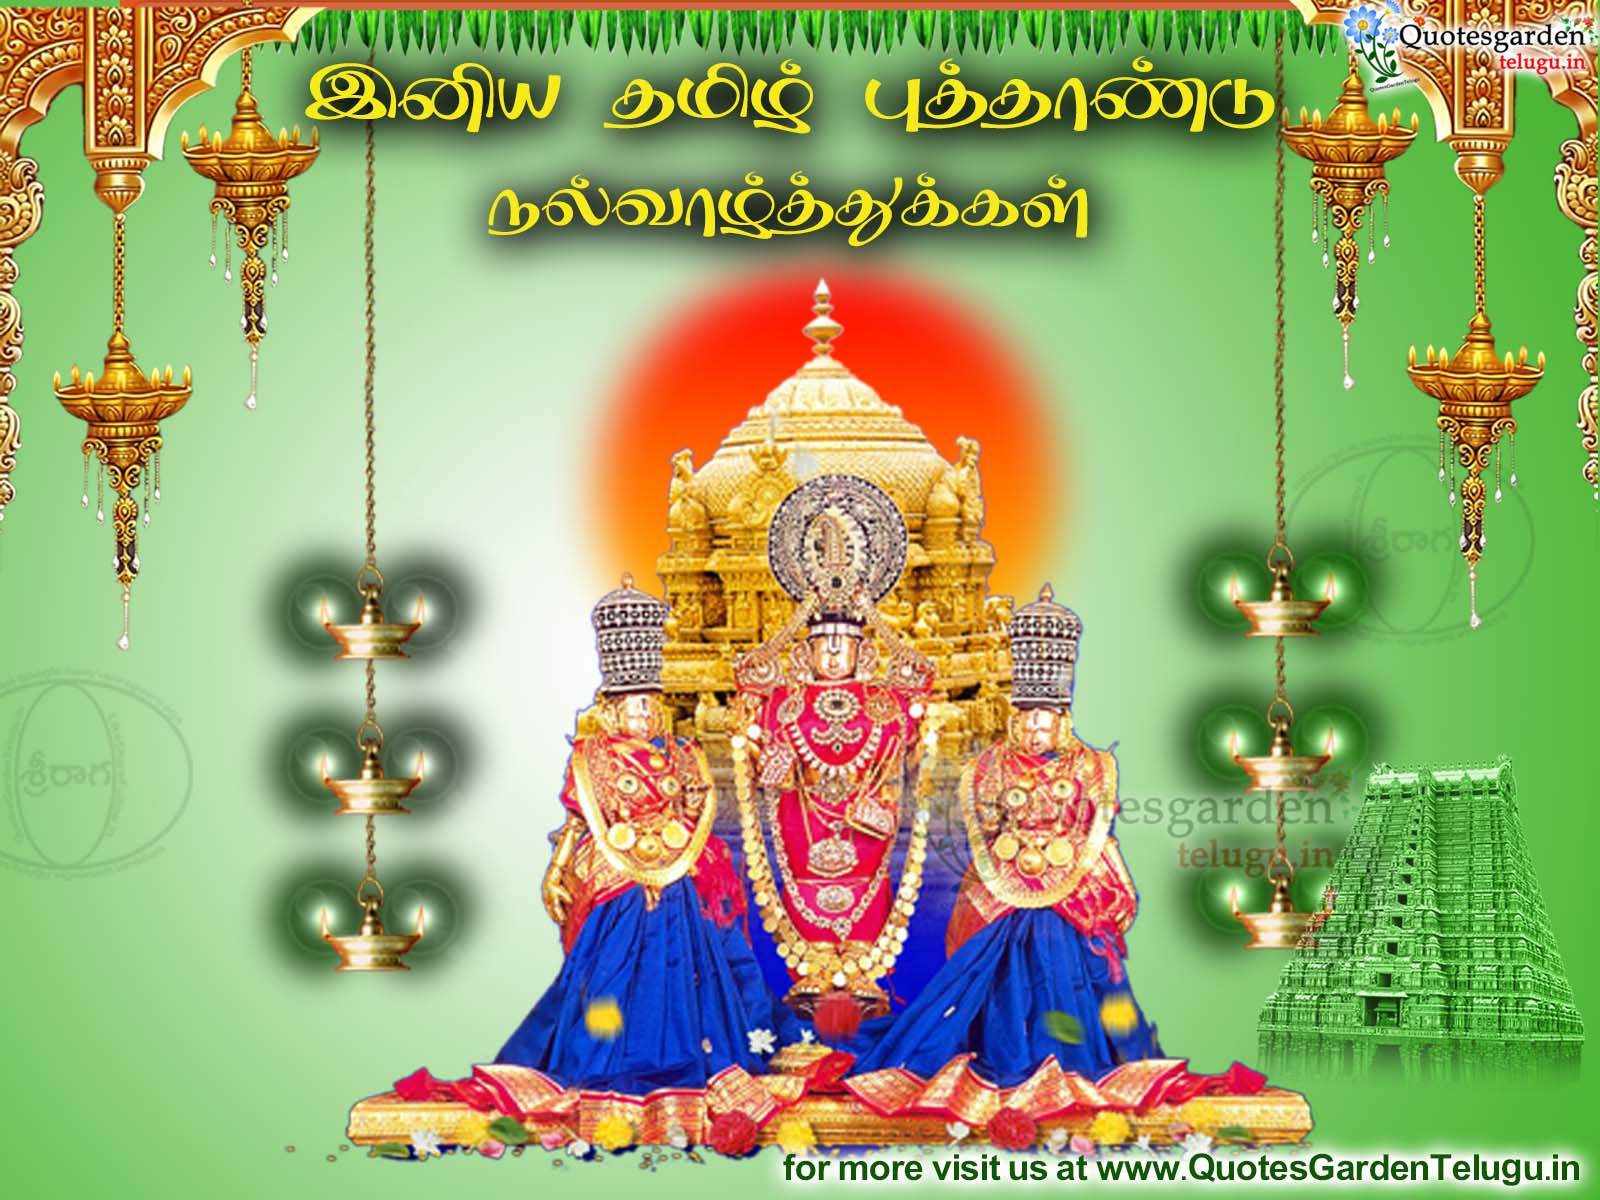 Tamil New Year Greetings wishes quotes messages images sms ...